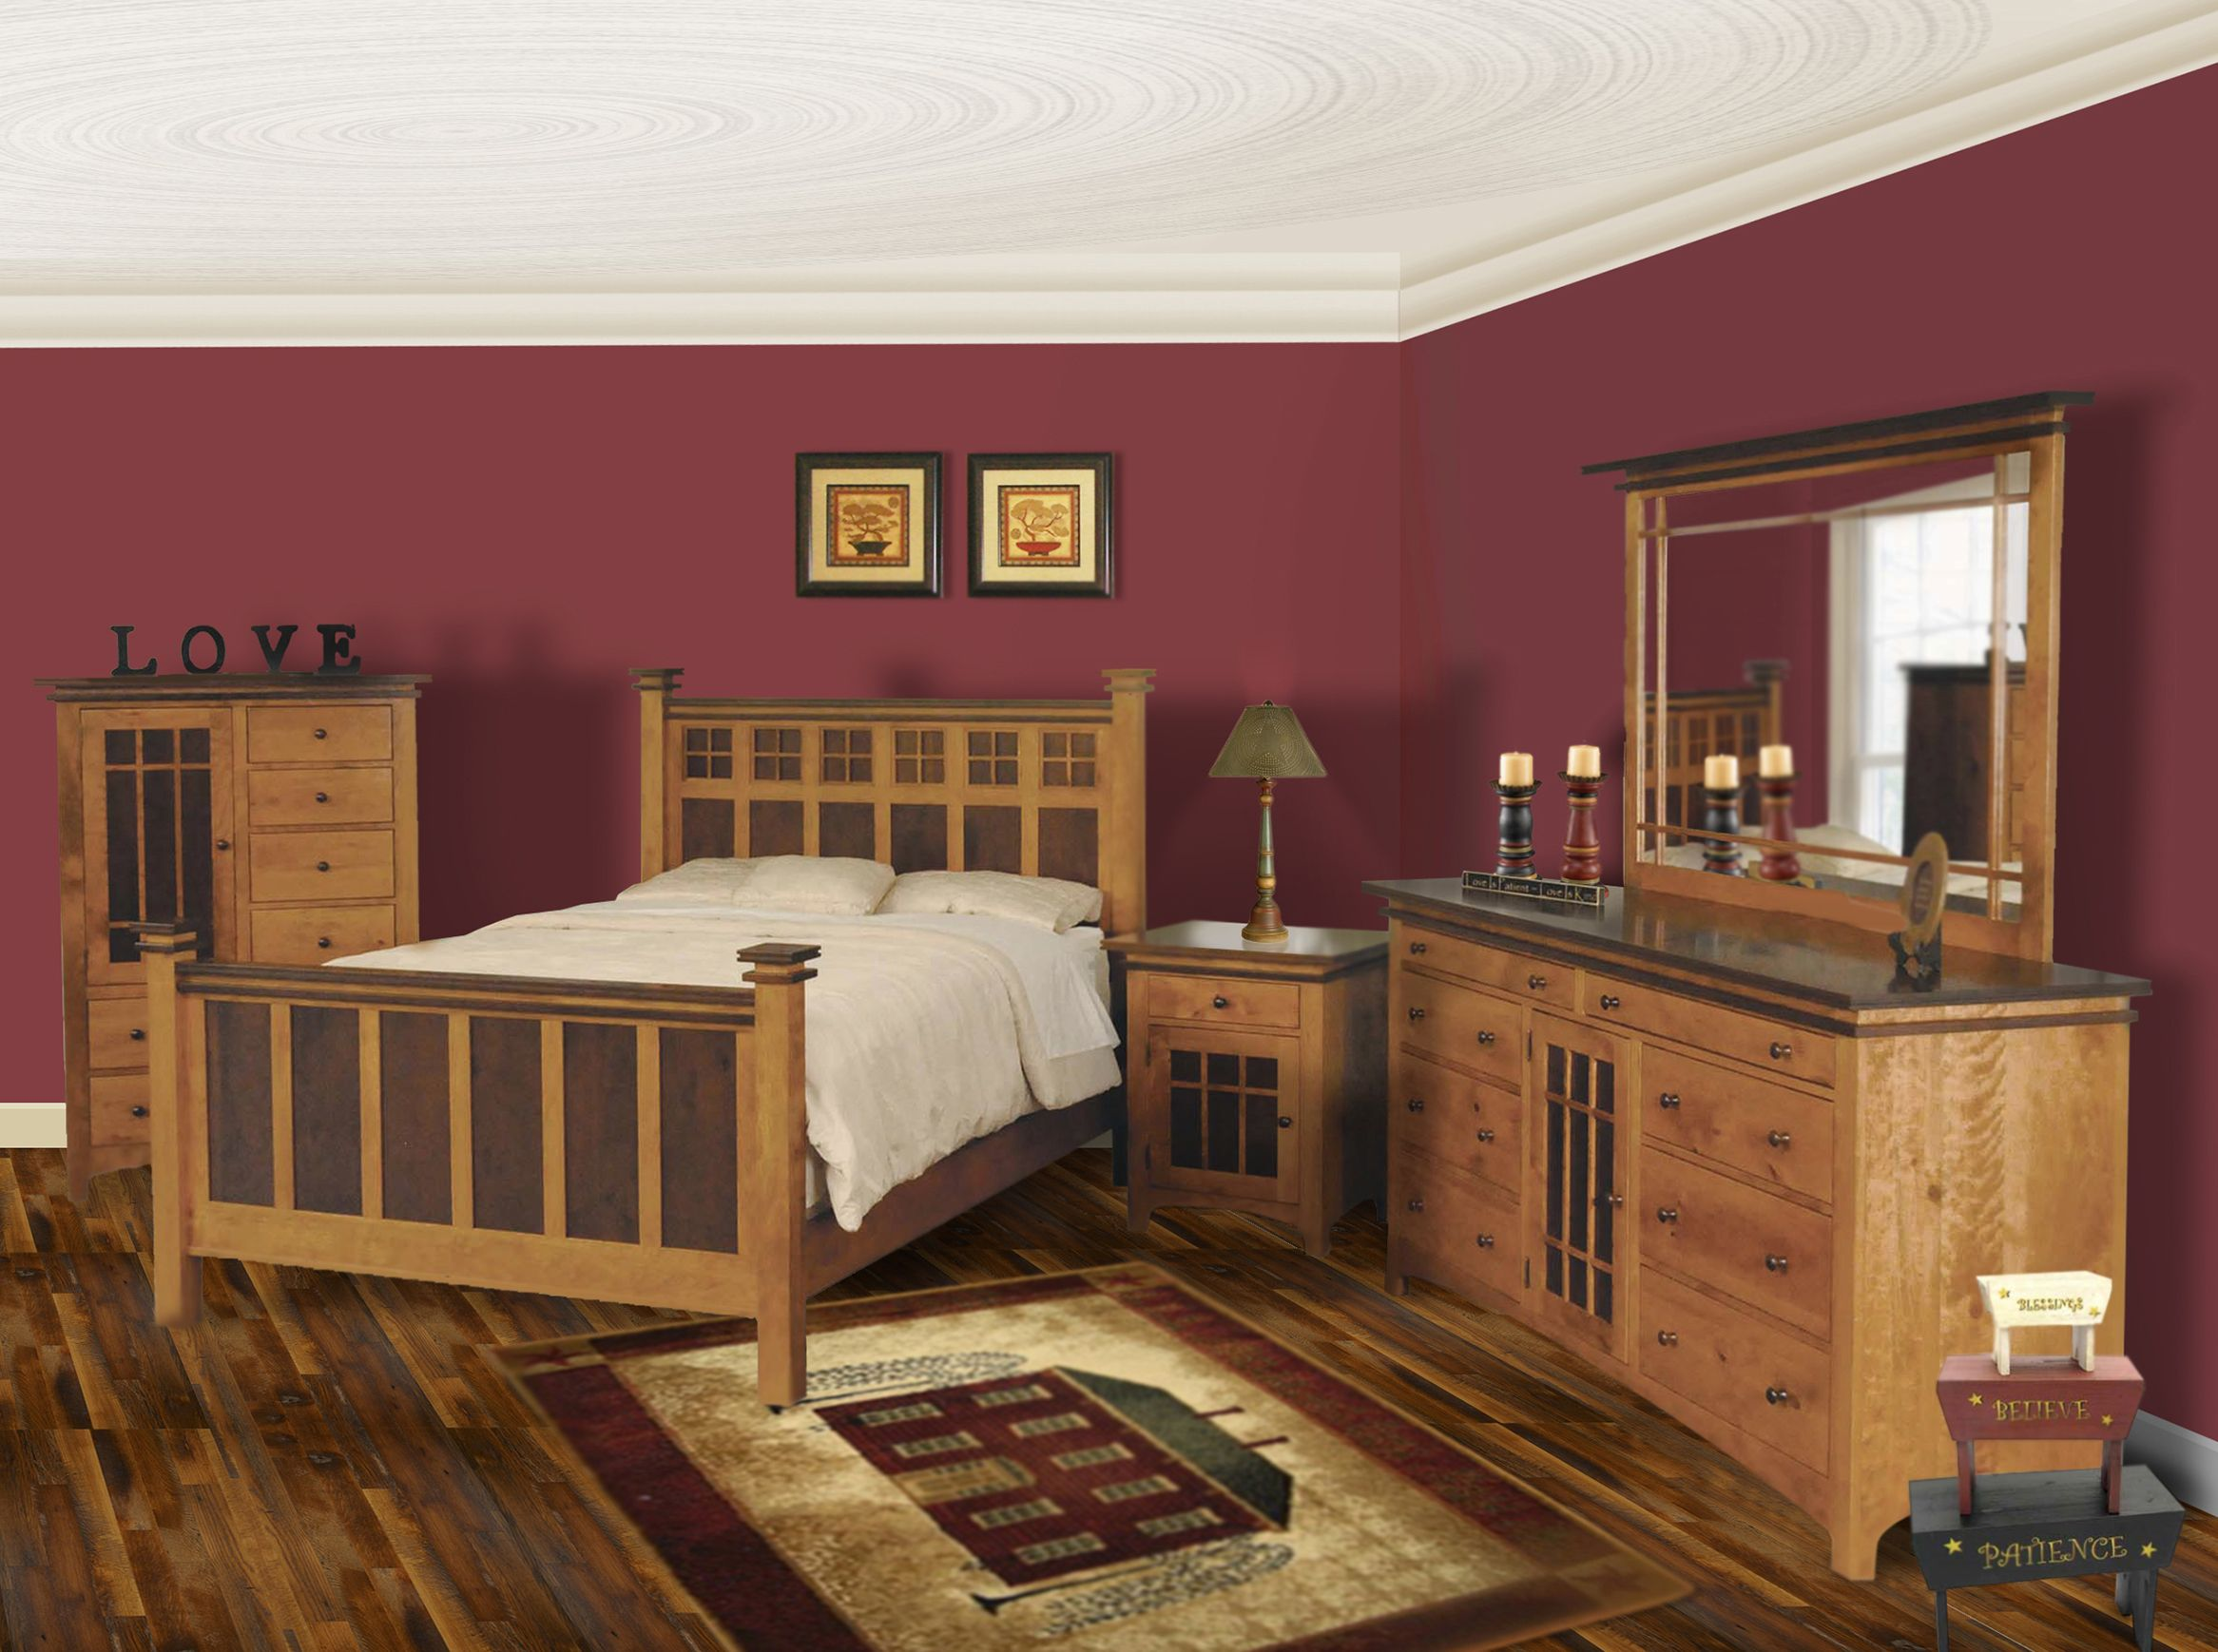 Amish Furniture Solid Wood Mission Shaker Furniture Chicago Area Illinois Furniture Amish Furniture Urban Home Decor